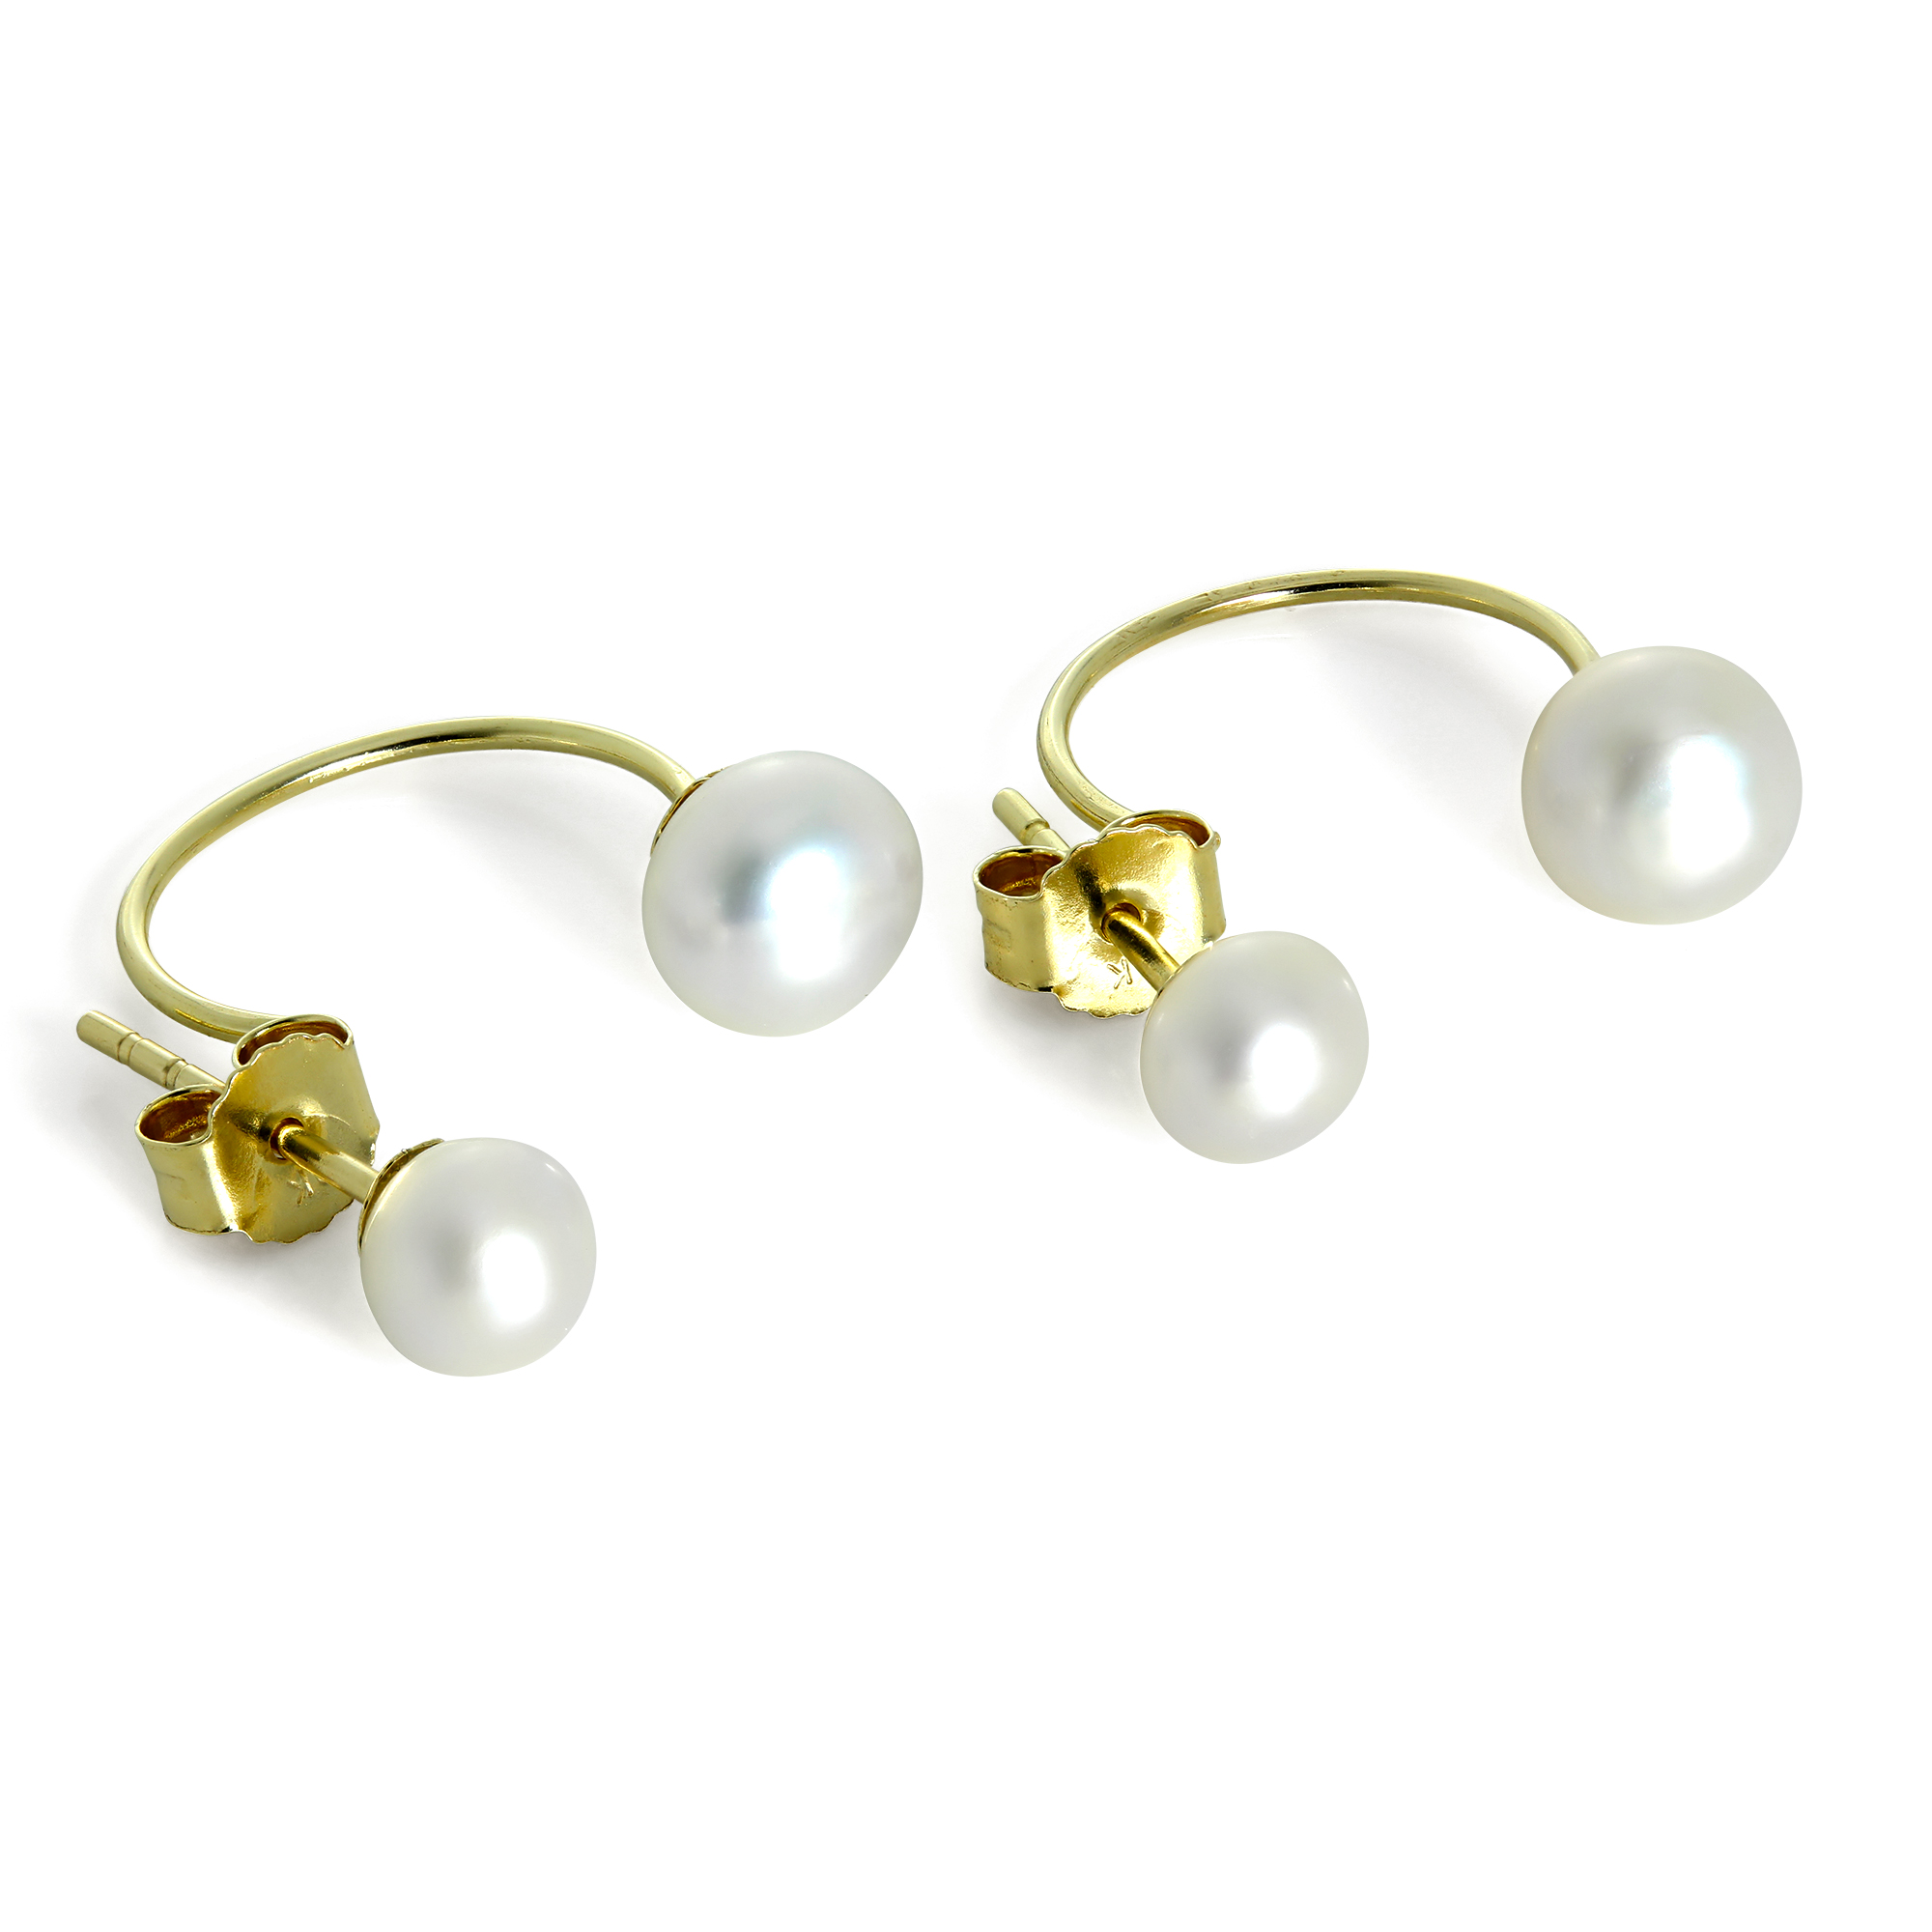 gold jewellery pearl silver zu earrings purebarstudssquare stud products bar pure and